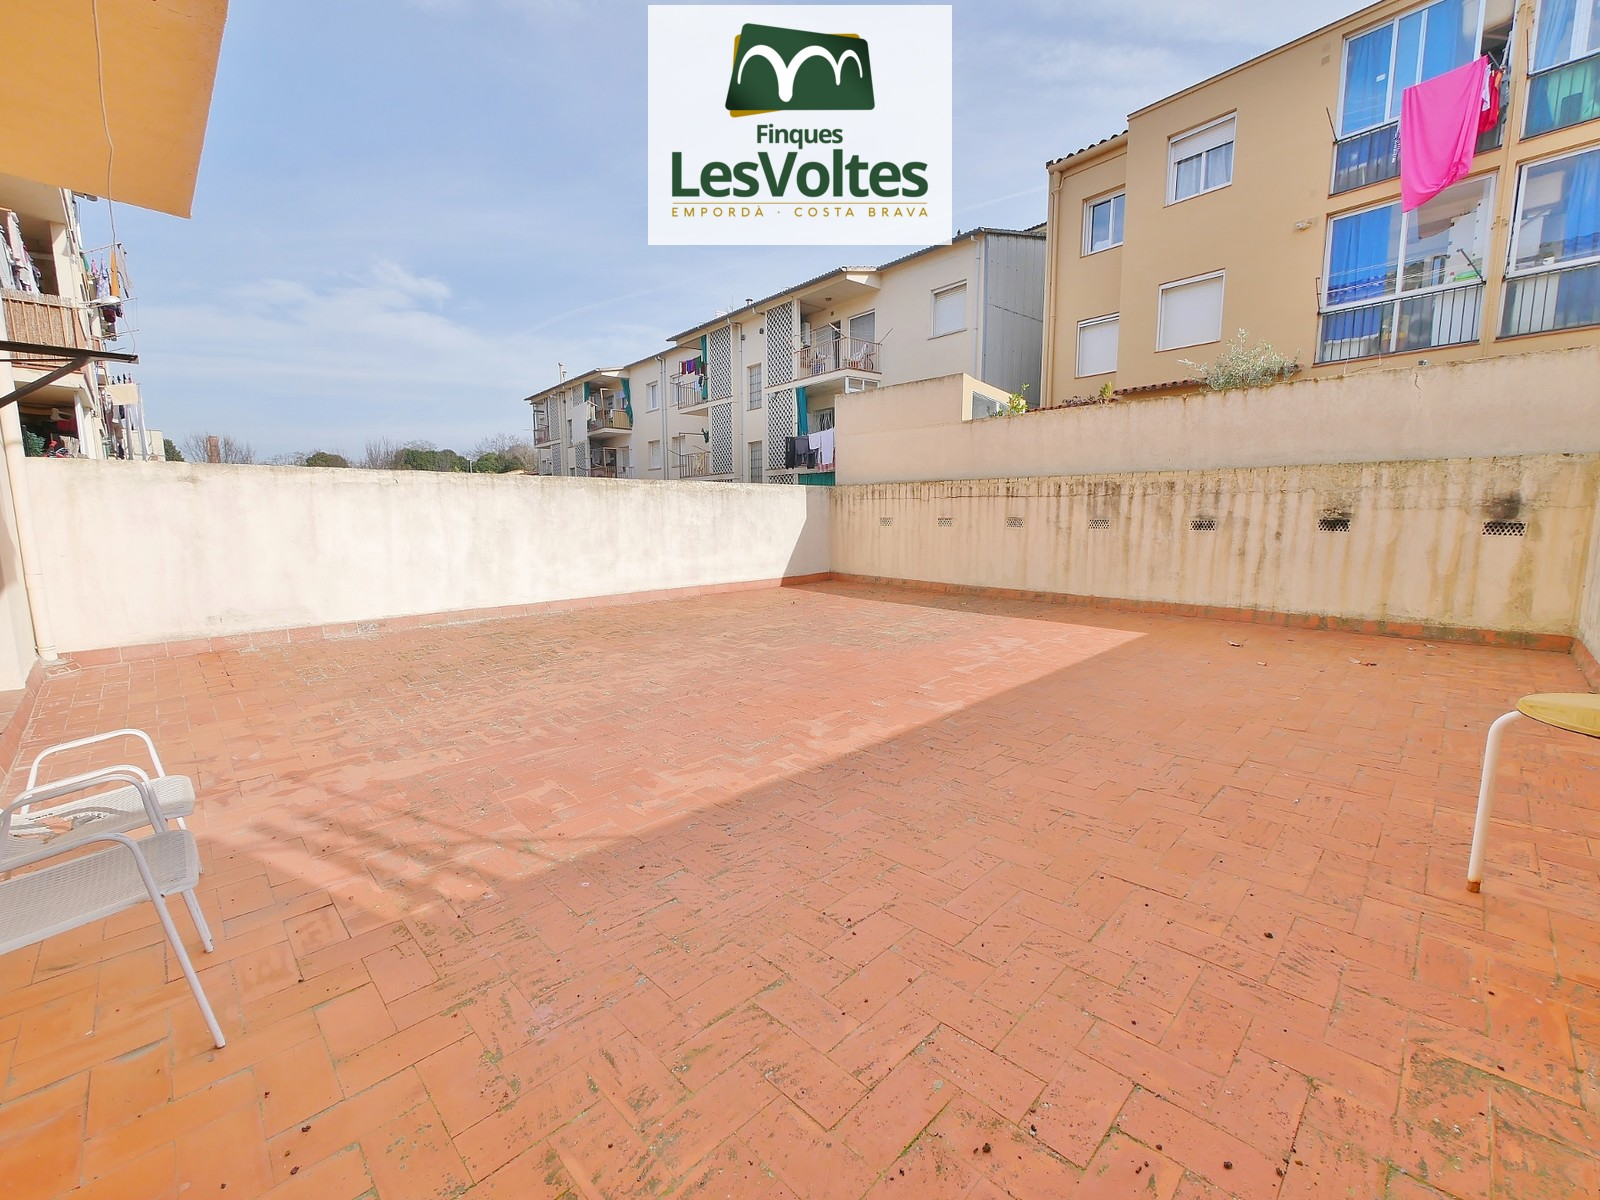 80 M2 APARTMENT ON THE FIRST FLOOR WITHOUT ELEVATOR, 70 M2 TERRACE AND CLOSED DOUBLE GARAGE FOR SALE IN LA BISBAL D'EMPORDÀ.